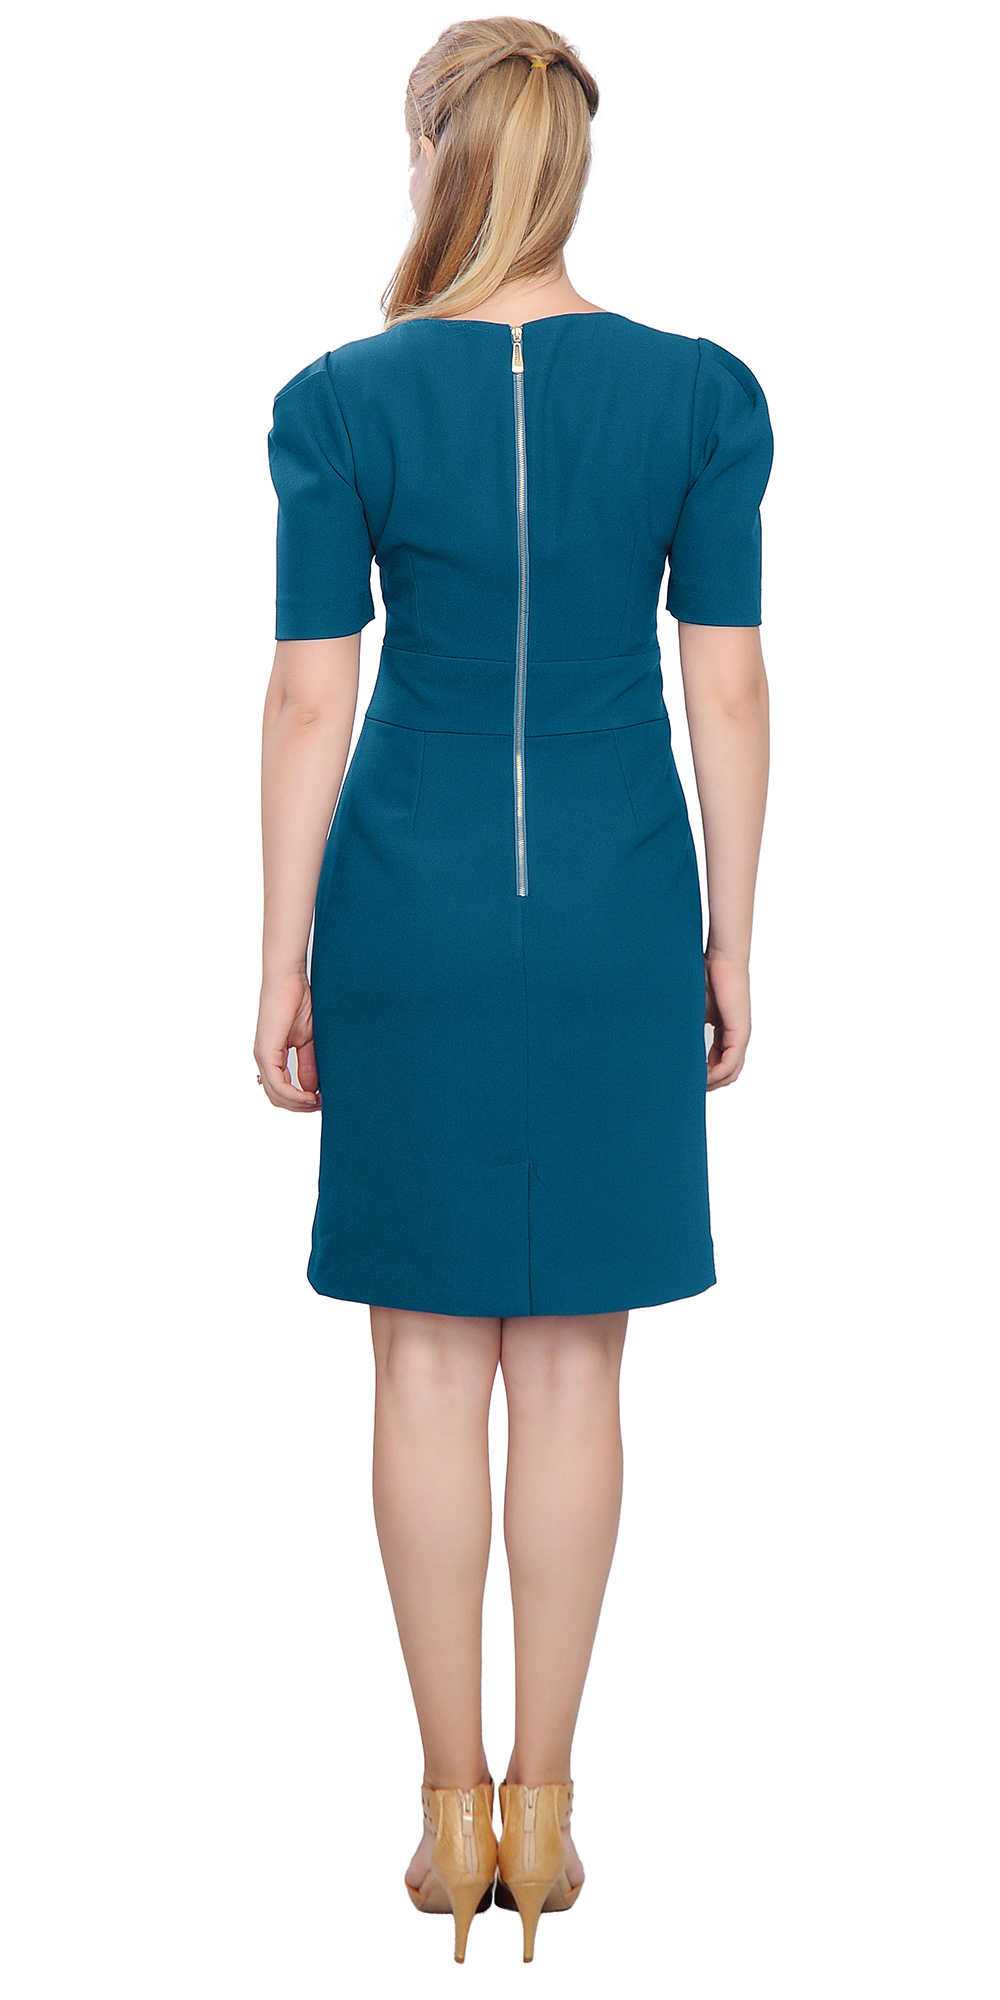 For chic women's suits, workwear, and office attire look no further than Dillard's Work Shop. Make Dillards your destination for your wear to work needs such as women's work dresses.